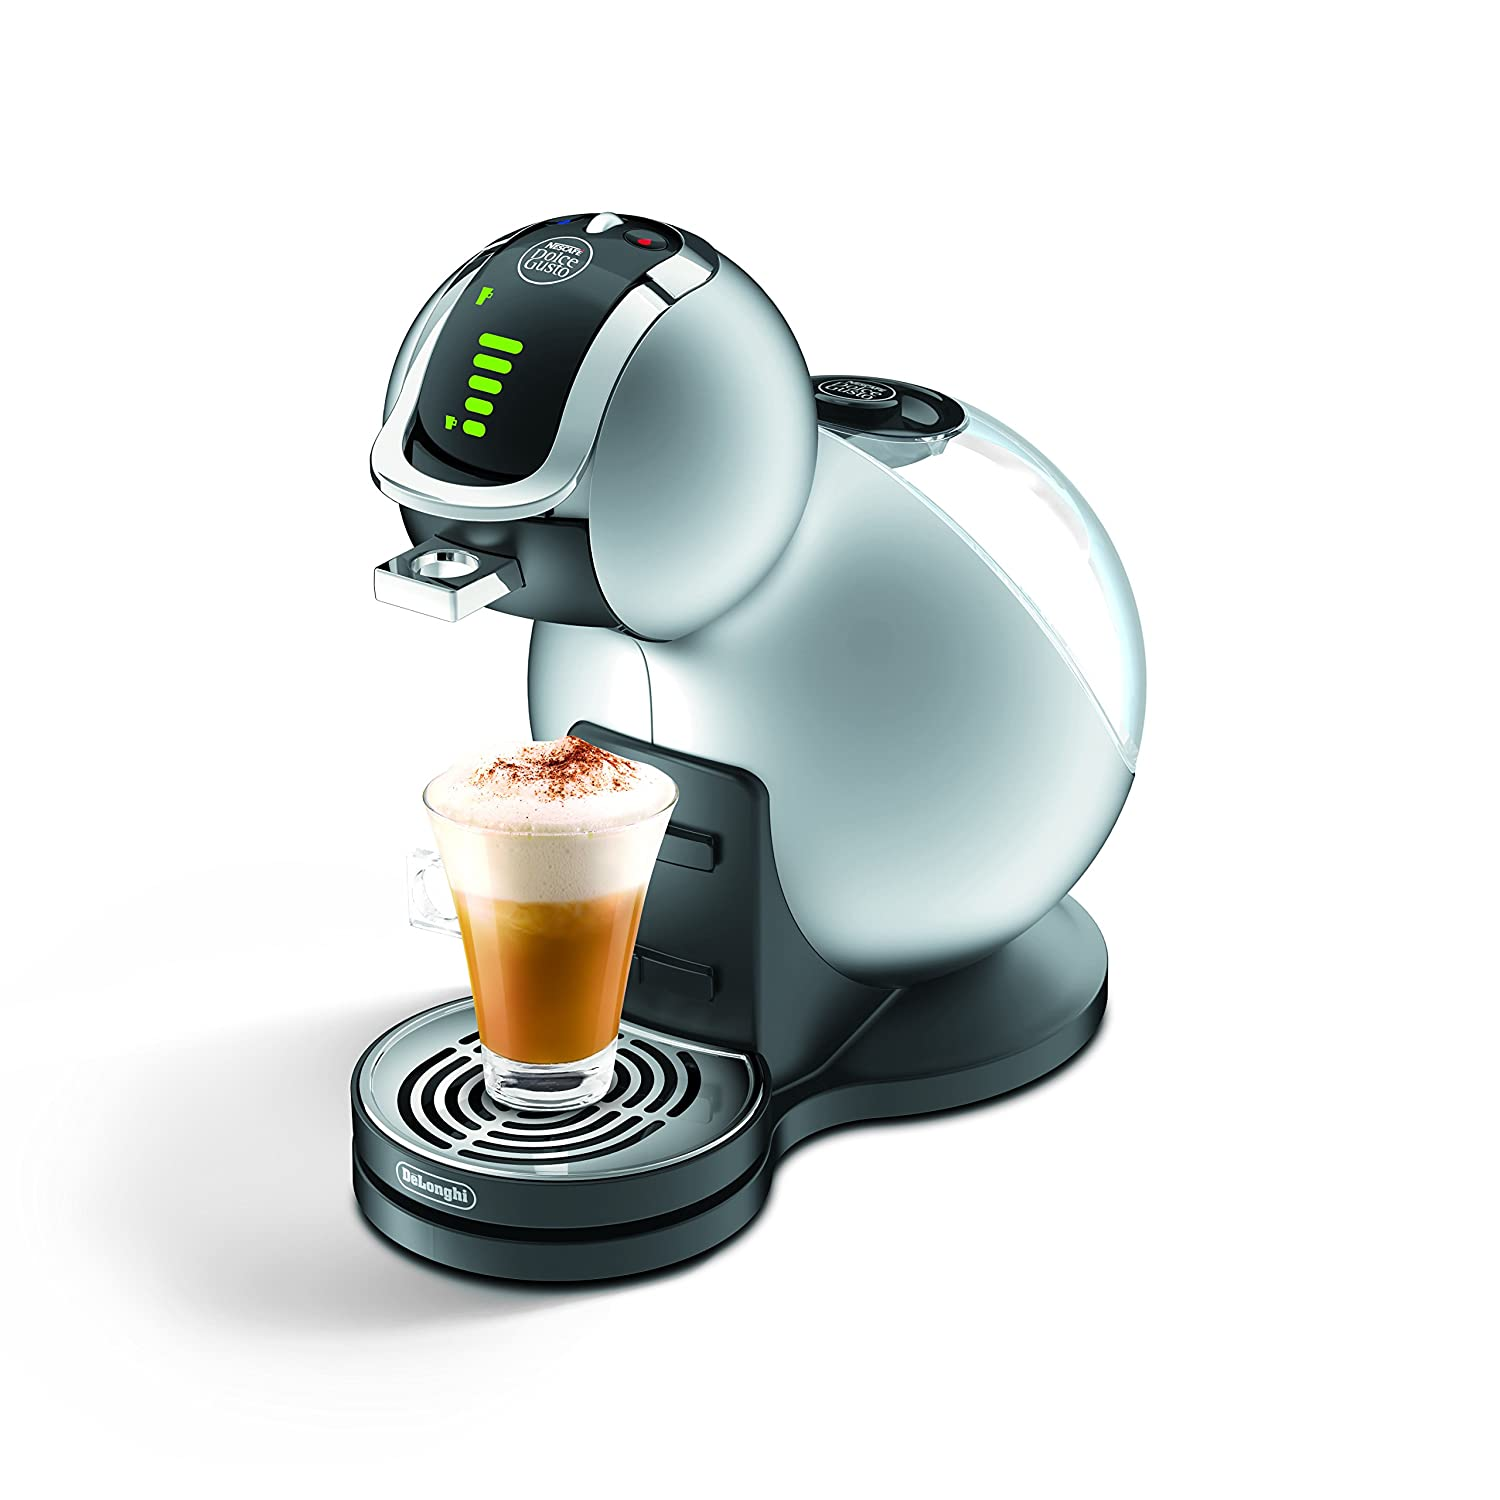 Amazon.com: Nescafe edg626.s Dolce Gusto Melody III 15 Bar ...